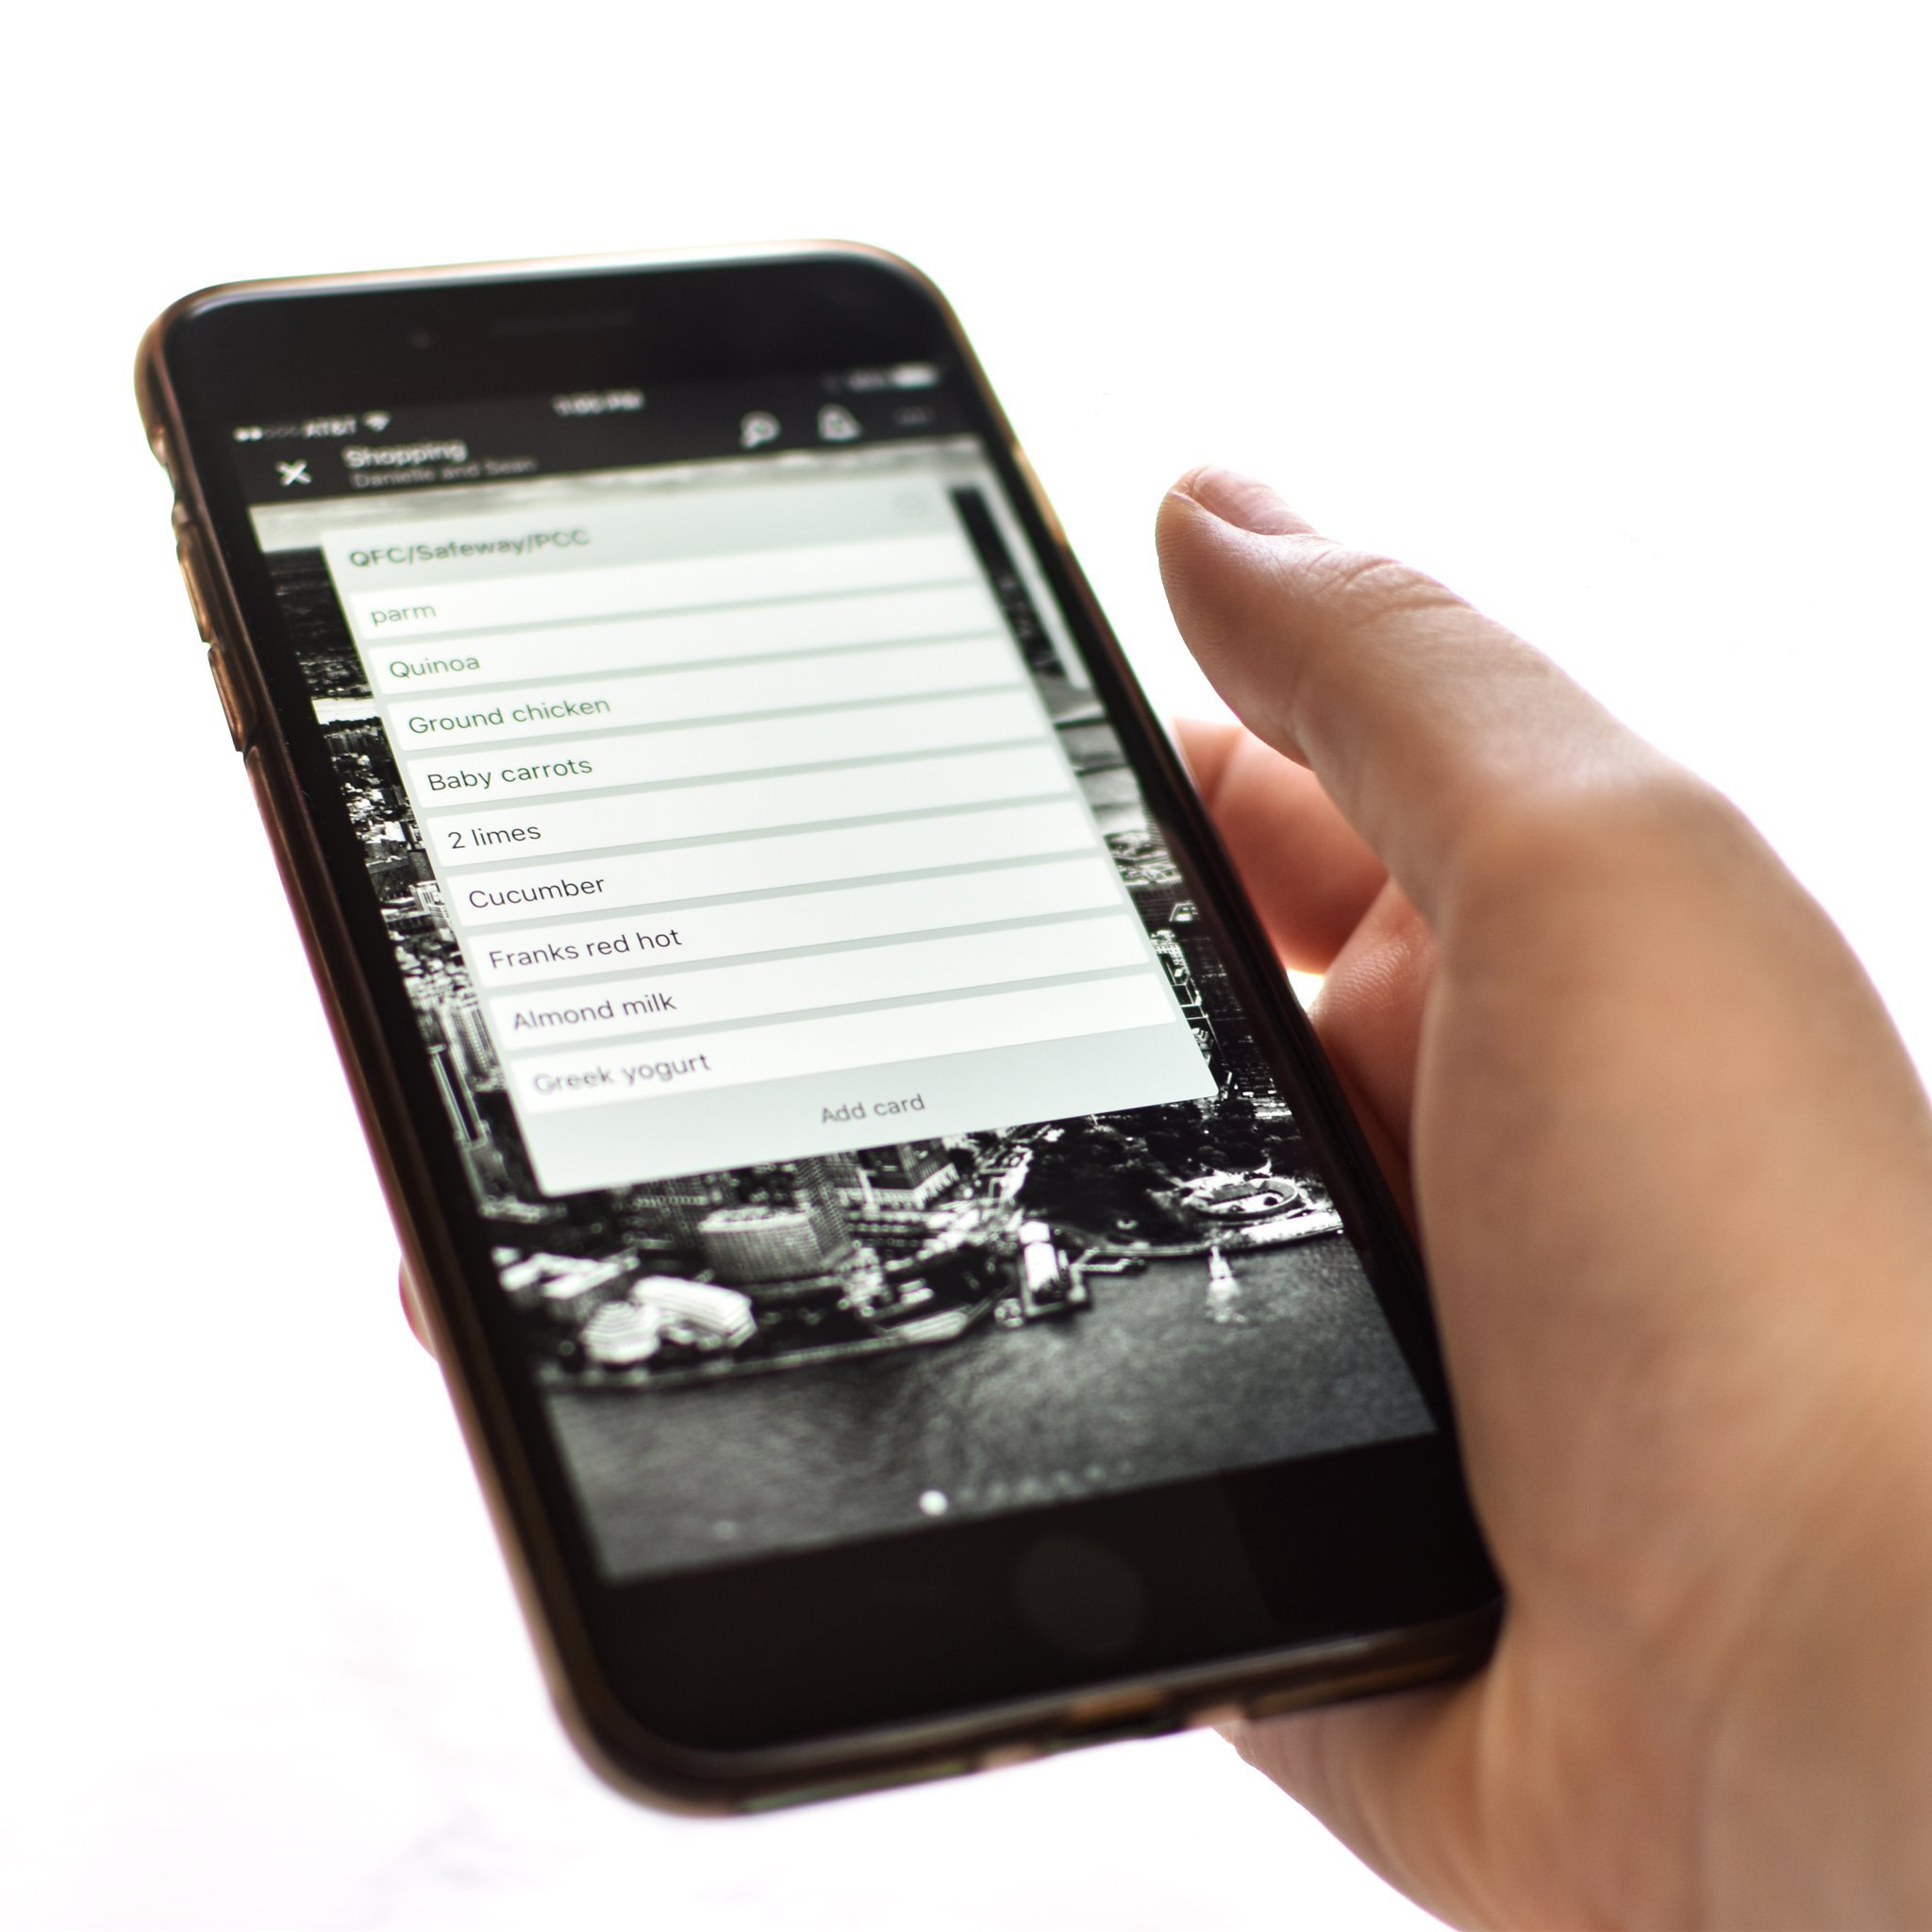 Holding a phone with a shopping list displayed using the app Trello.